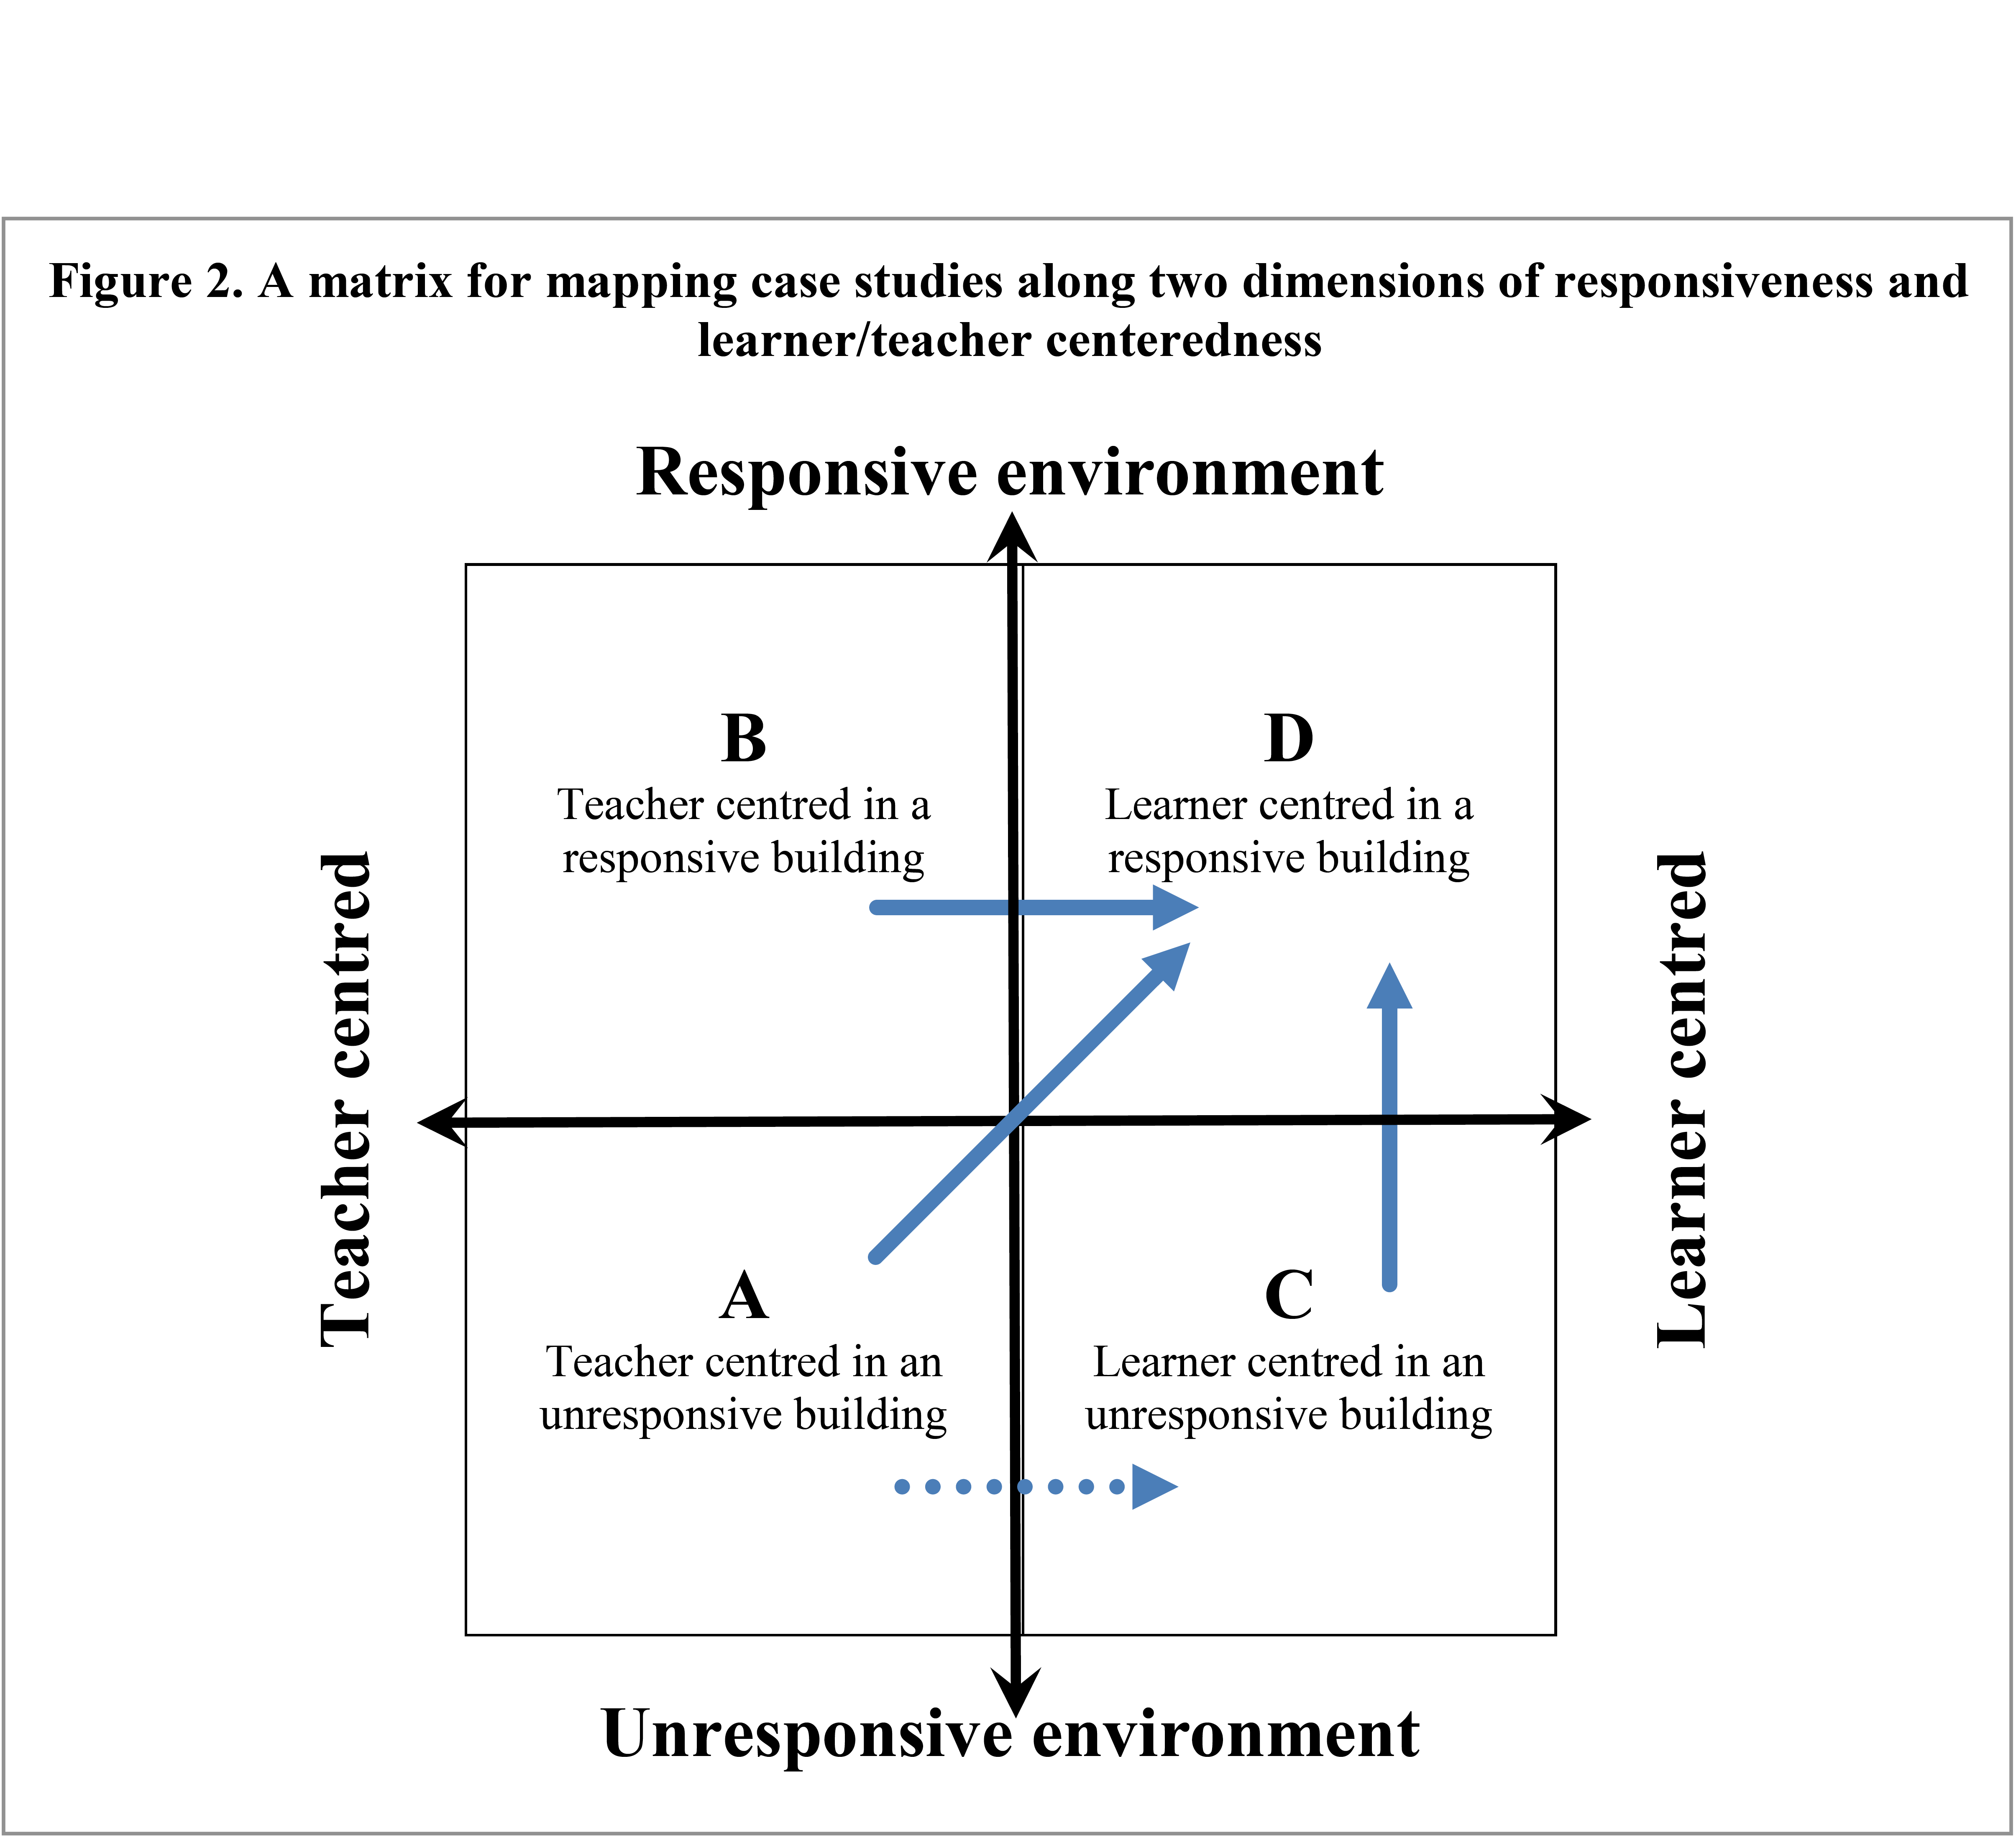 2. Analytical Framework for OECD Case Studies on Transforming Learning Environments. Click here…